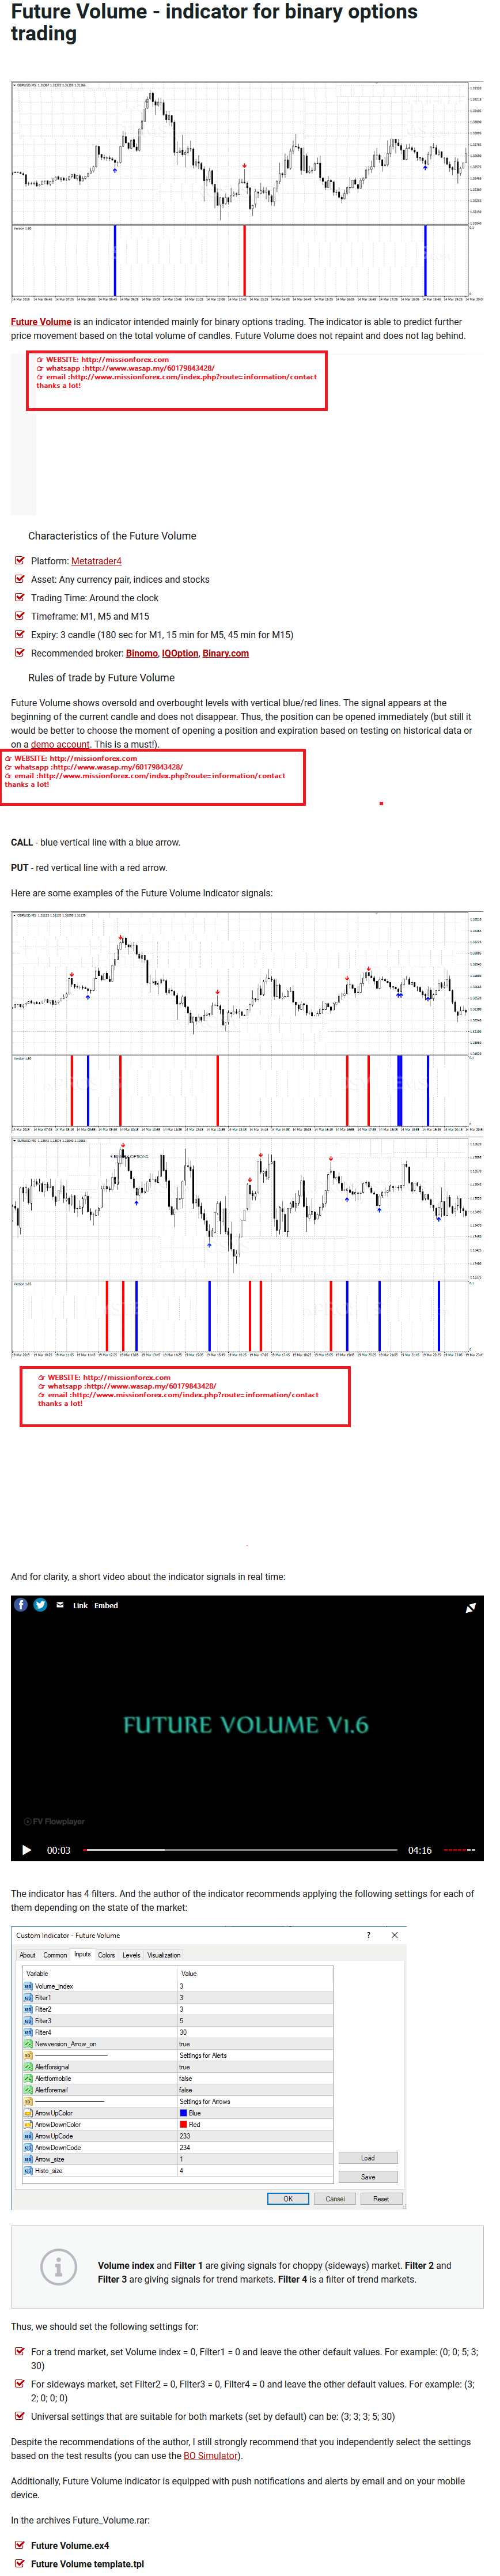 Future Volume - indicator for binary options trading